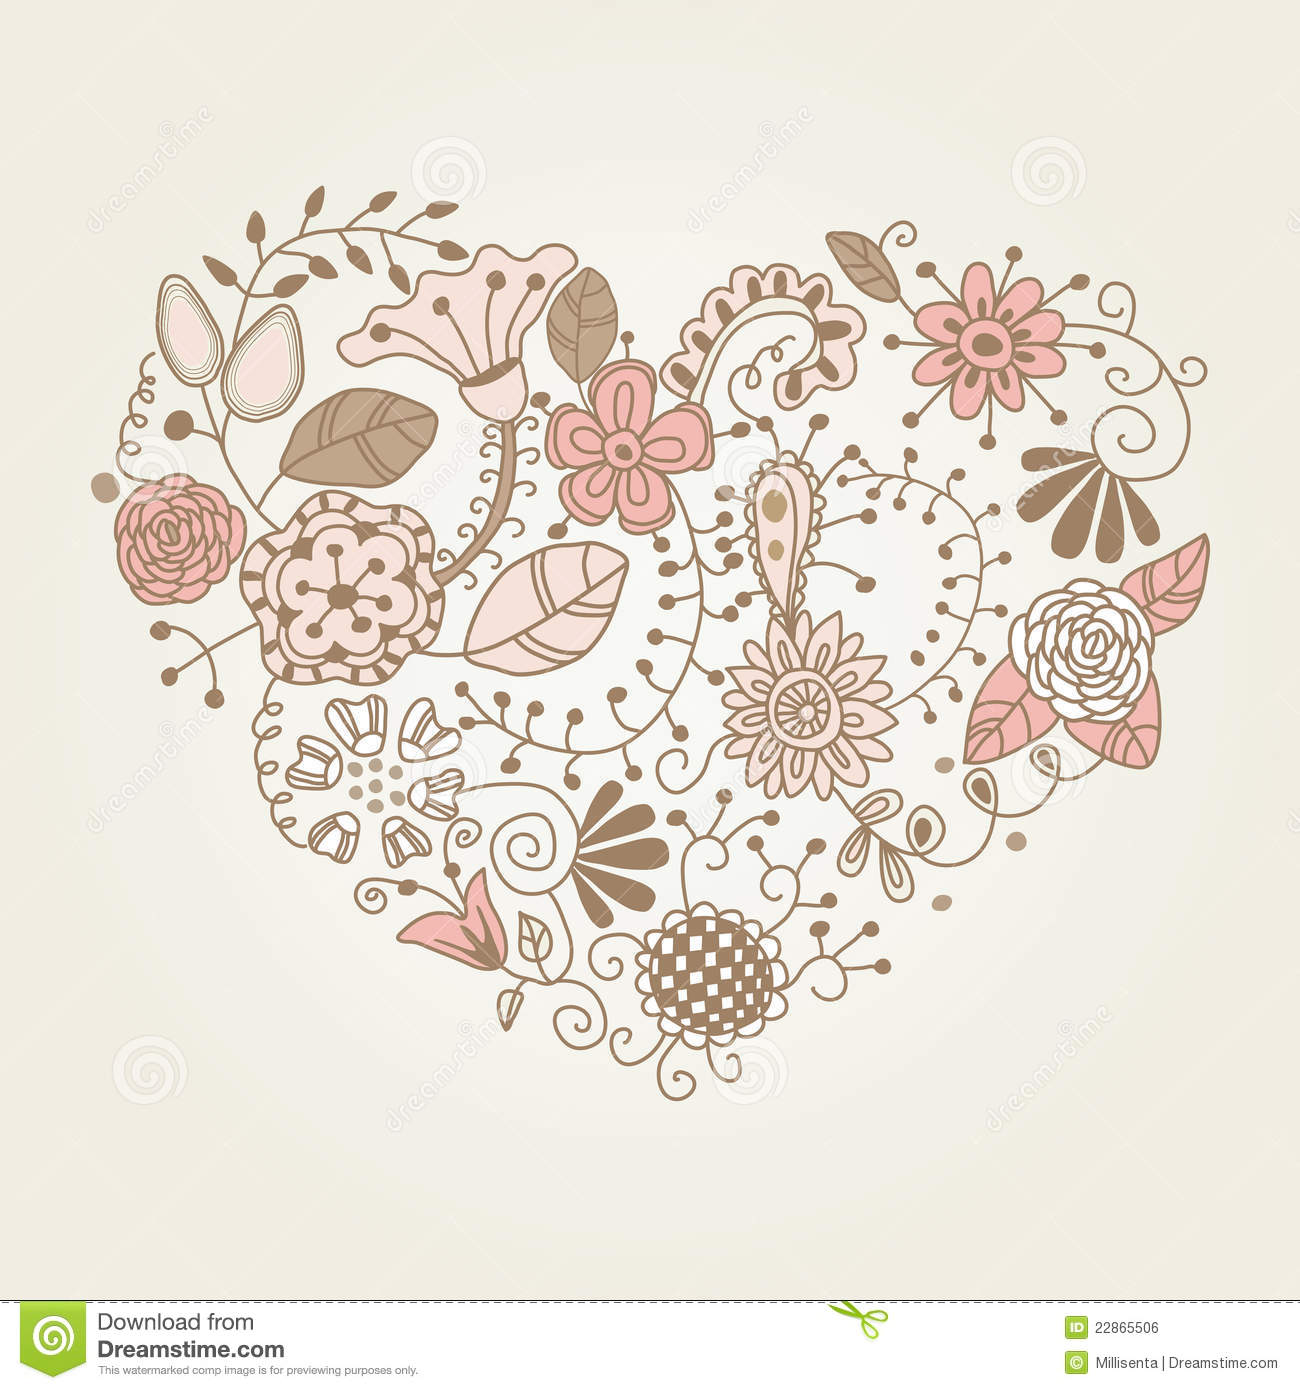 Decorative frames set download free vector art stock graphics - Floral Vintage Heart Shape Royalty Free Stock Image